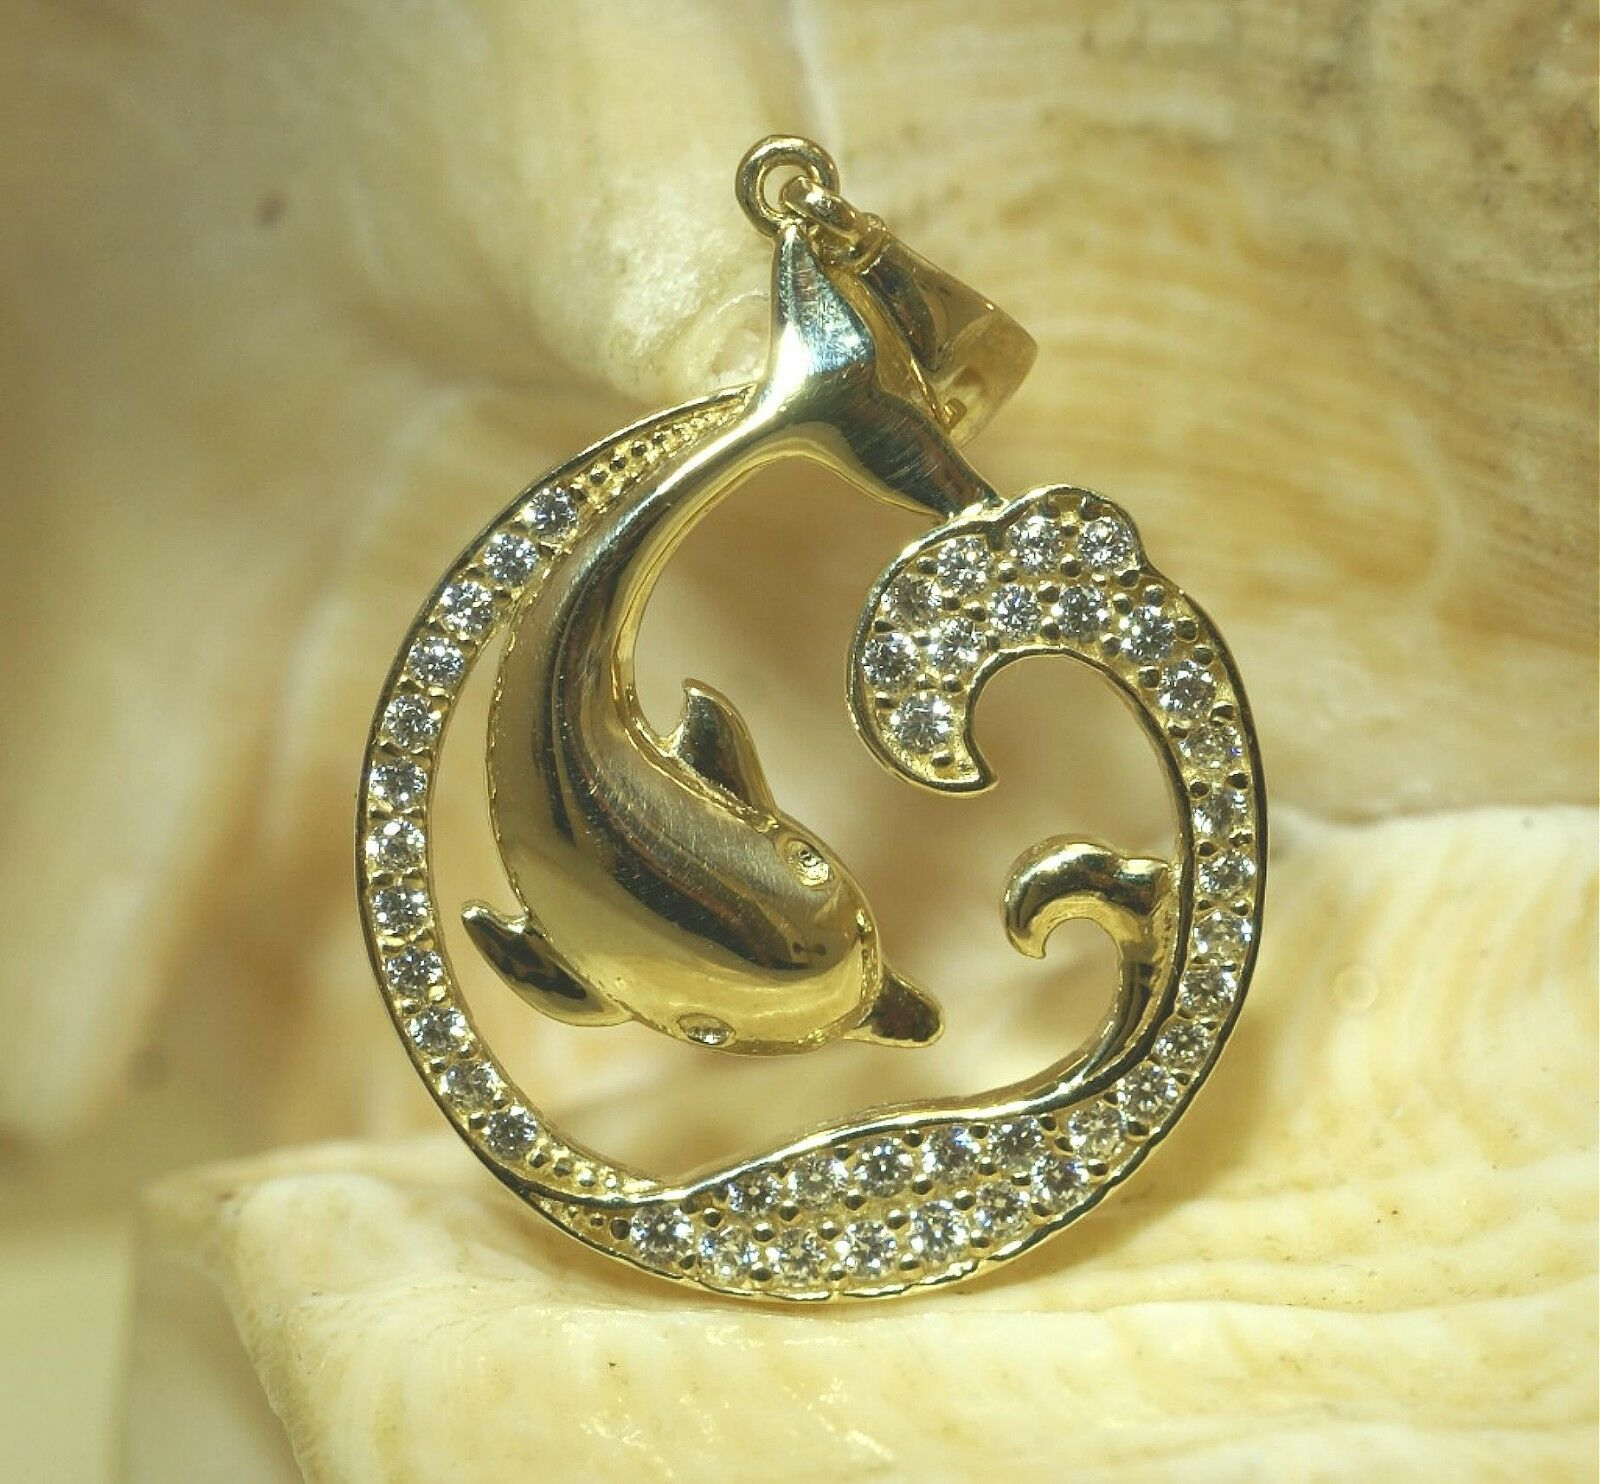 18.5MM SOLID 14K YELLOW gold HAWAIIAN DOLPHIN OCEAN WAVE CIRCLE CZ CHARM PENDANT